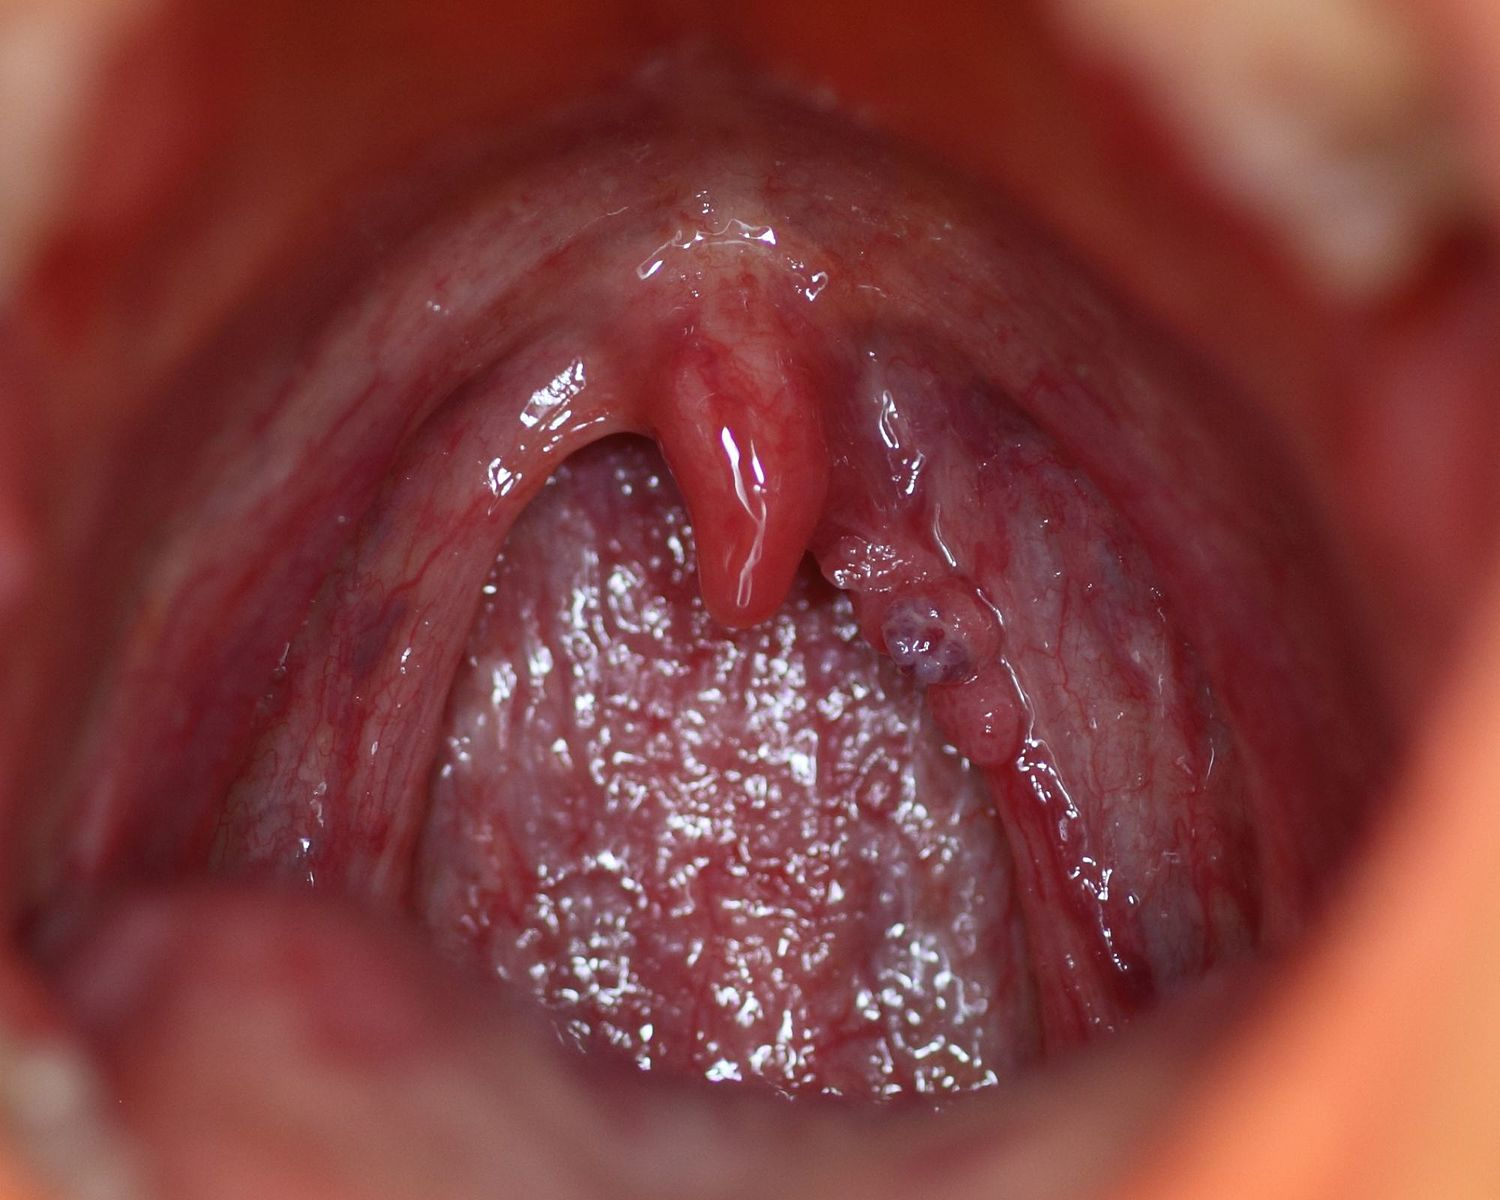 hpv symptoms on mouth